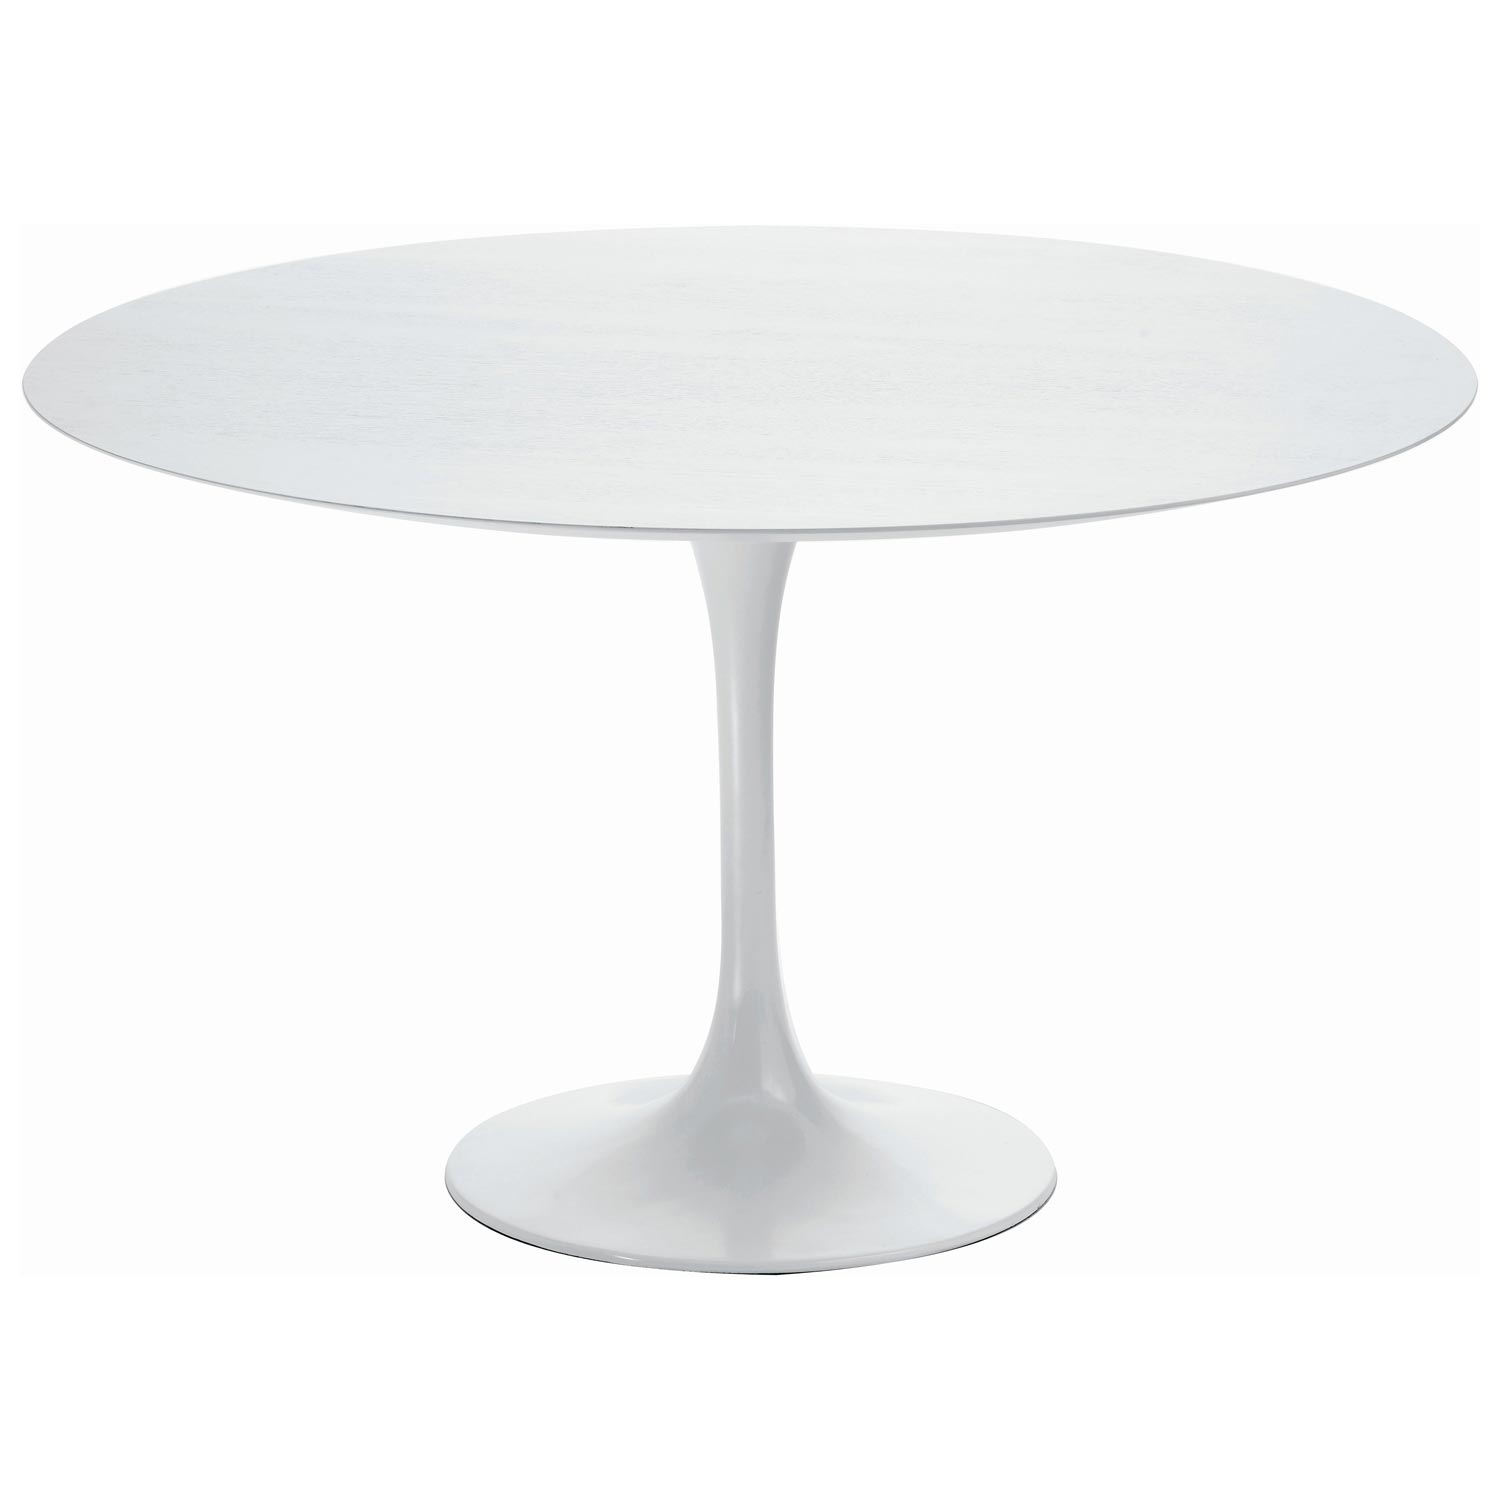 Cal Round Dining Table - Saarinen Inspired